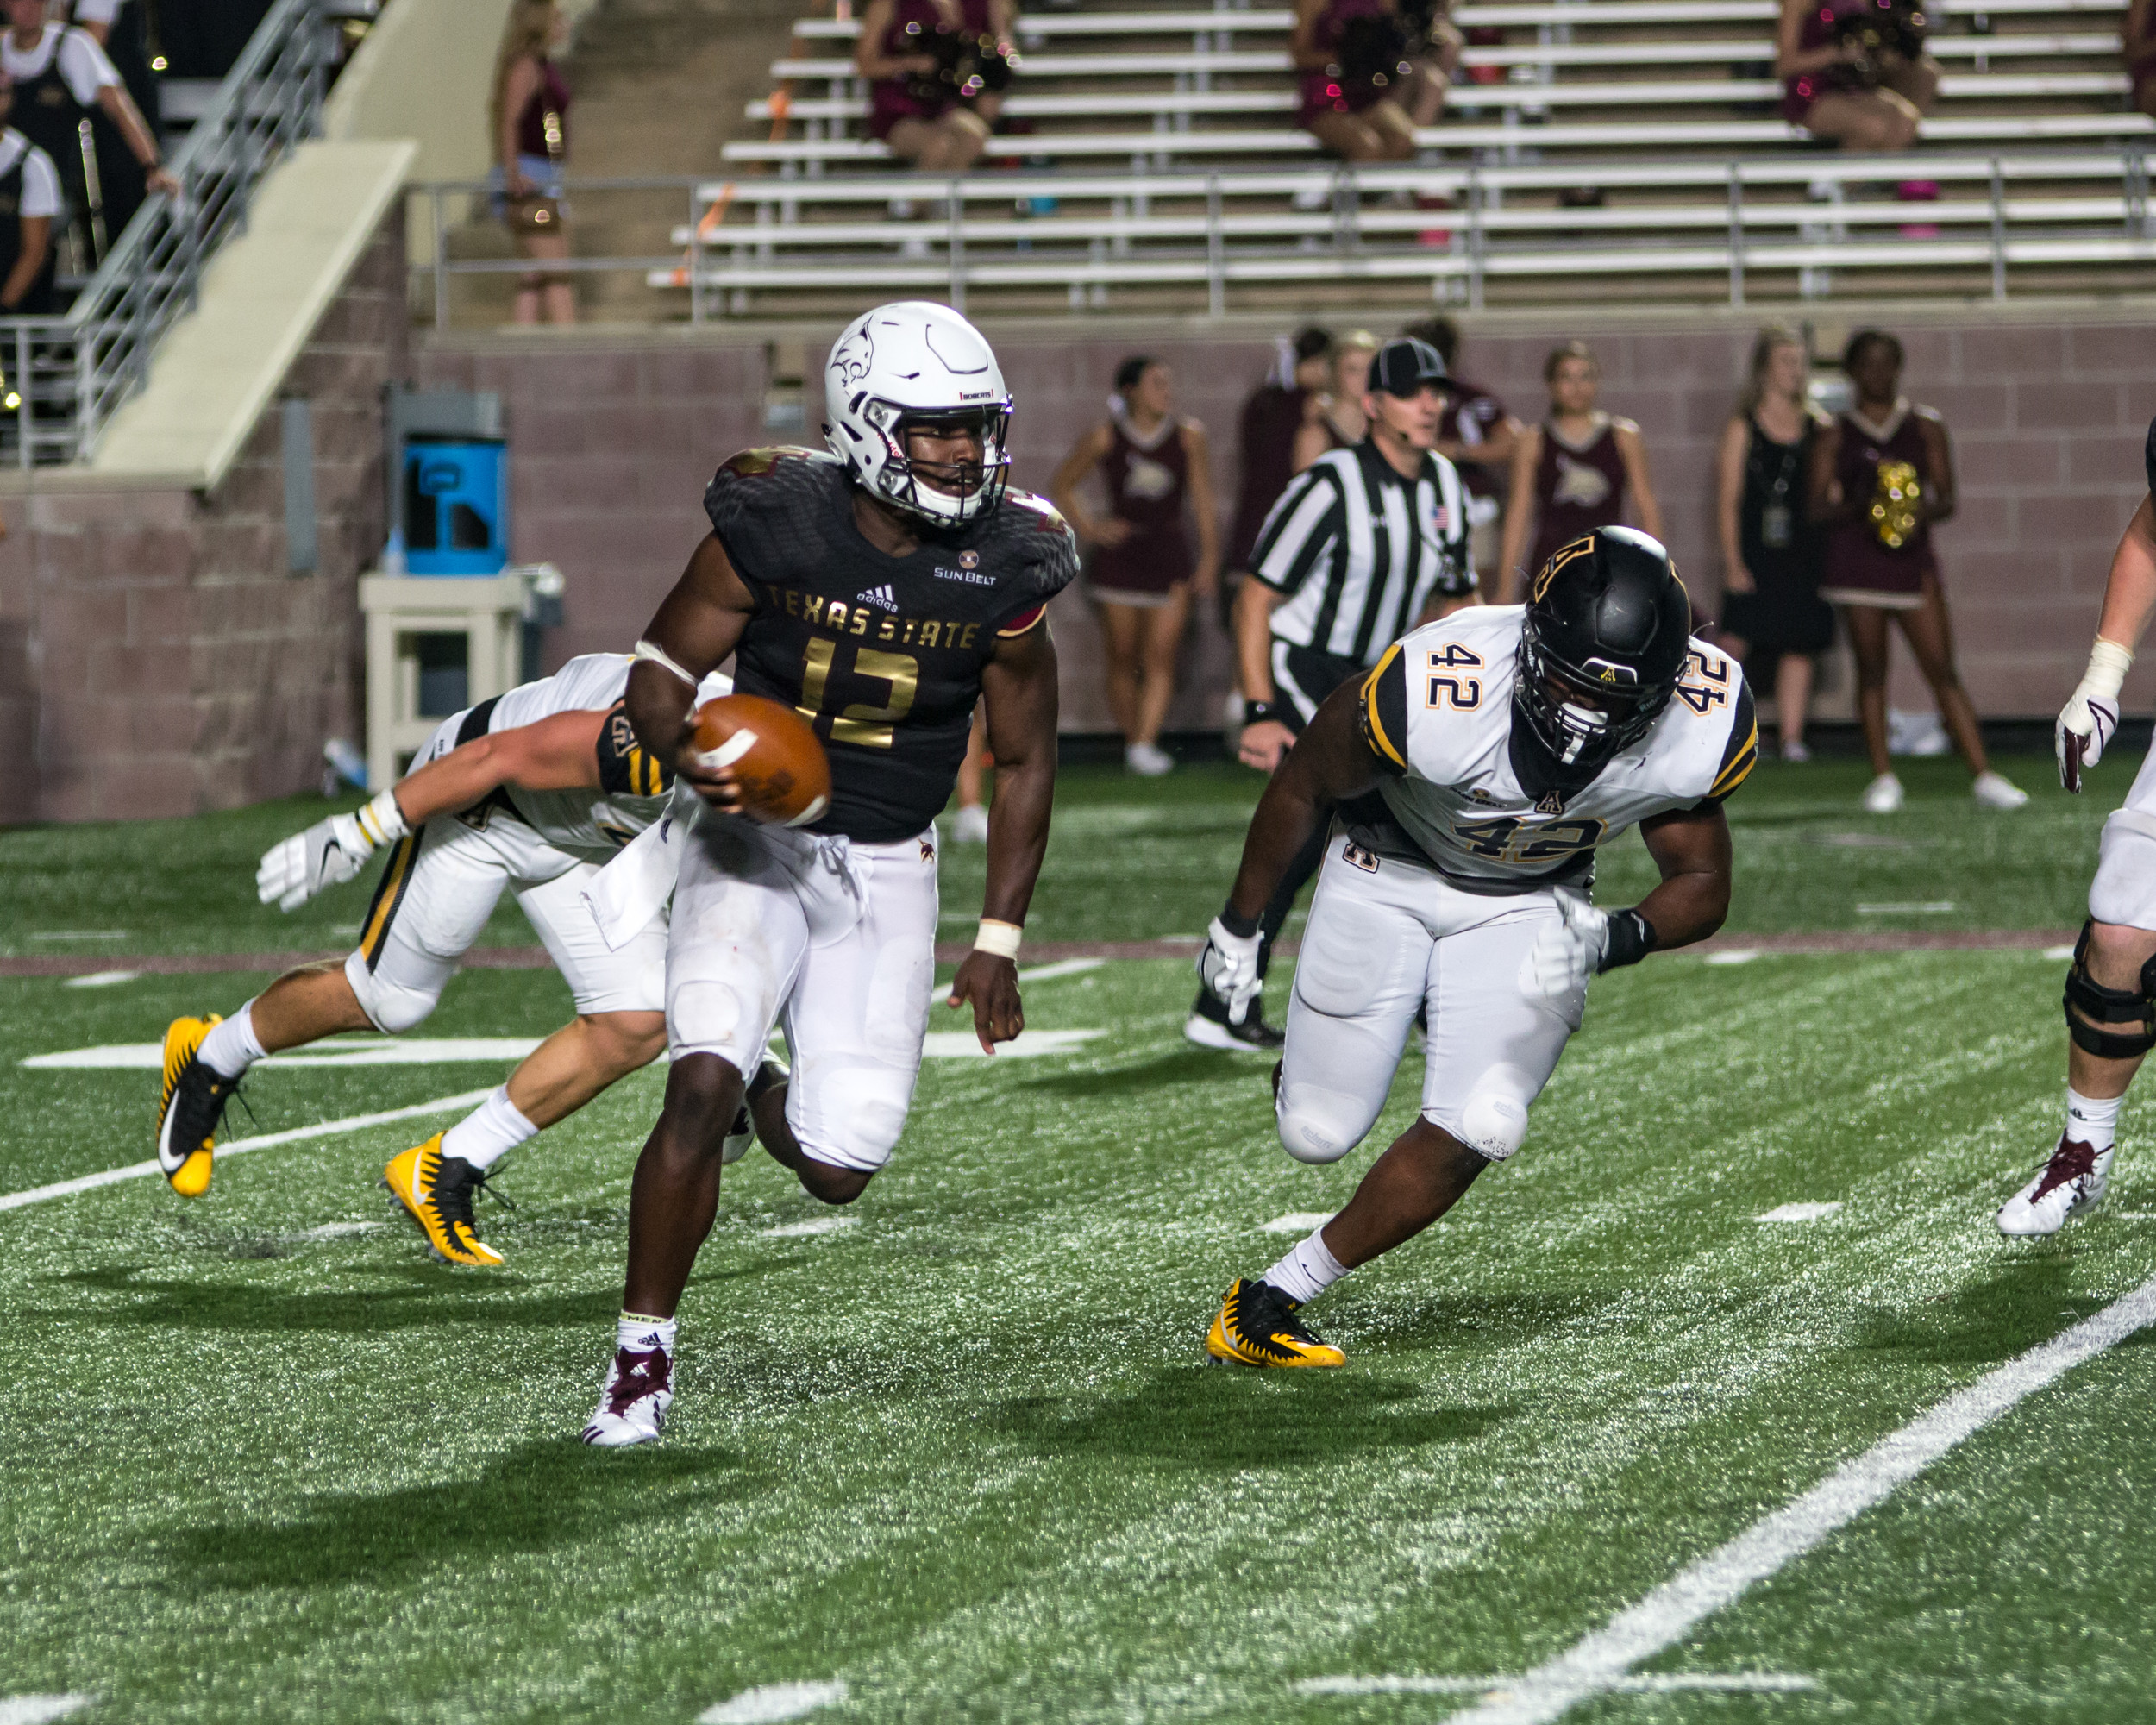 Damian Williams threw for 260 yards and a touchdowns and ran for another 46 yards in Texas State's 20-13 loss to Appalachian State Saturday night.